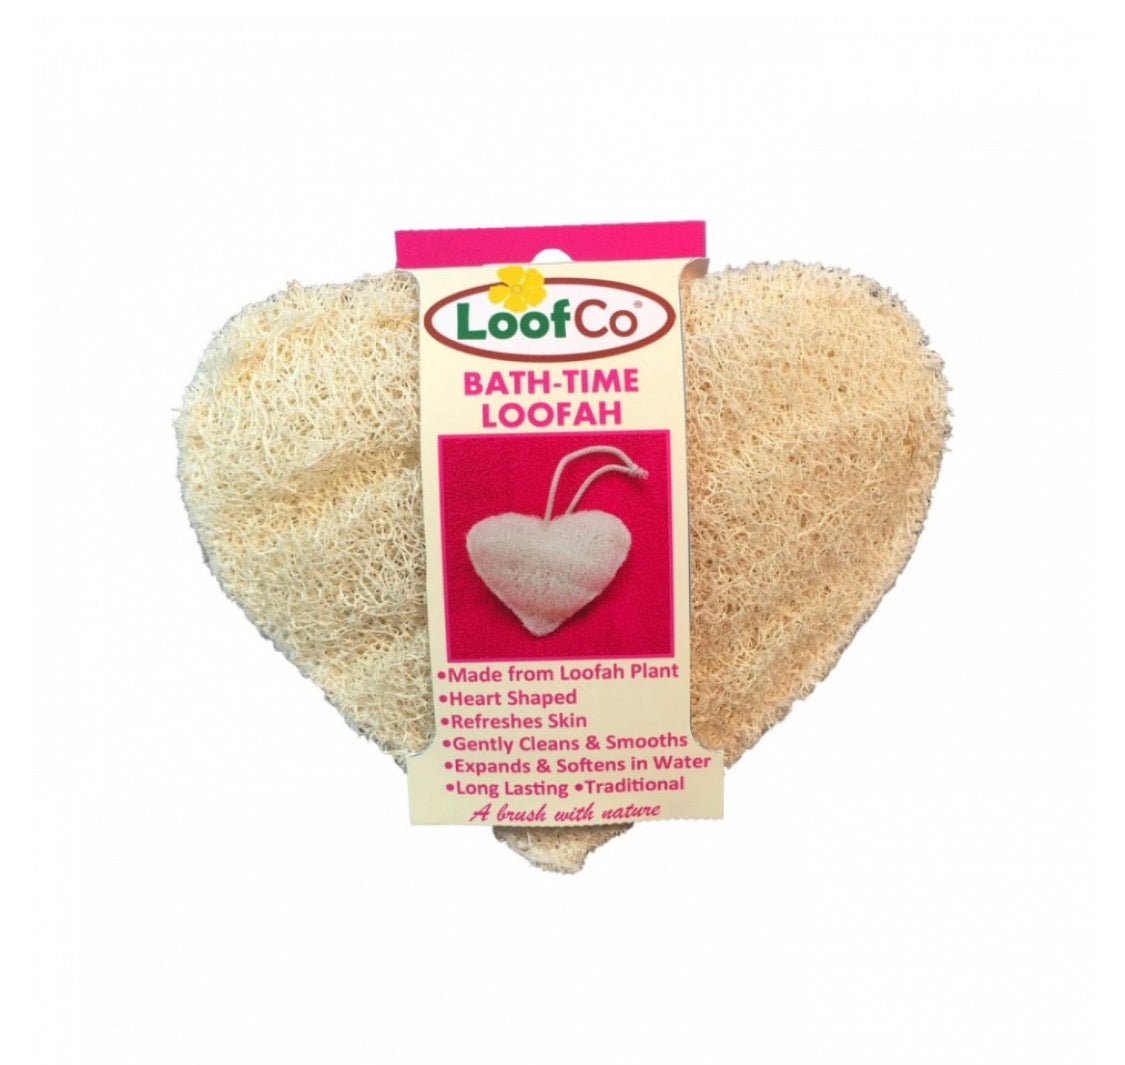 Loofco Bath Time Loofah